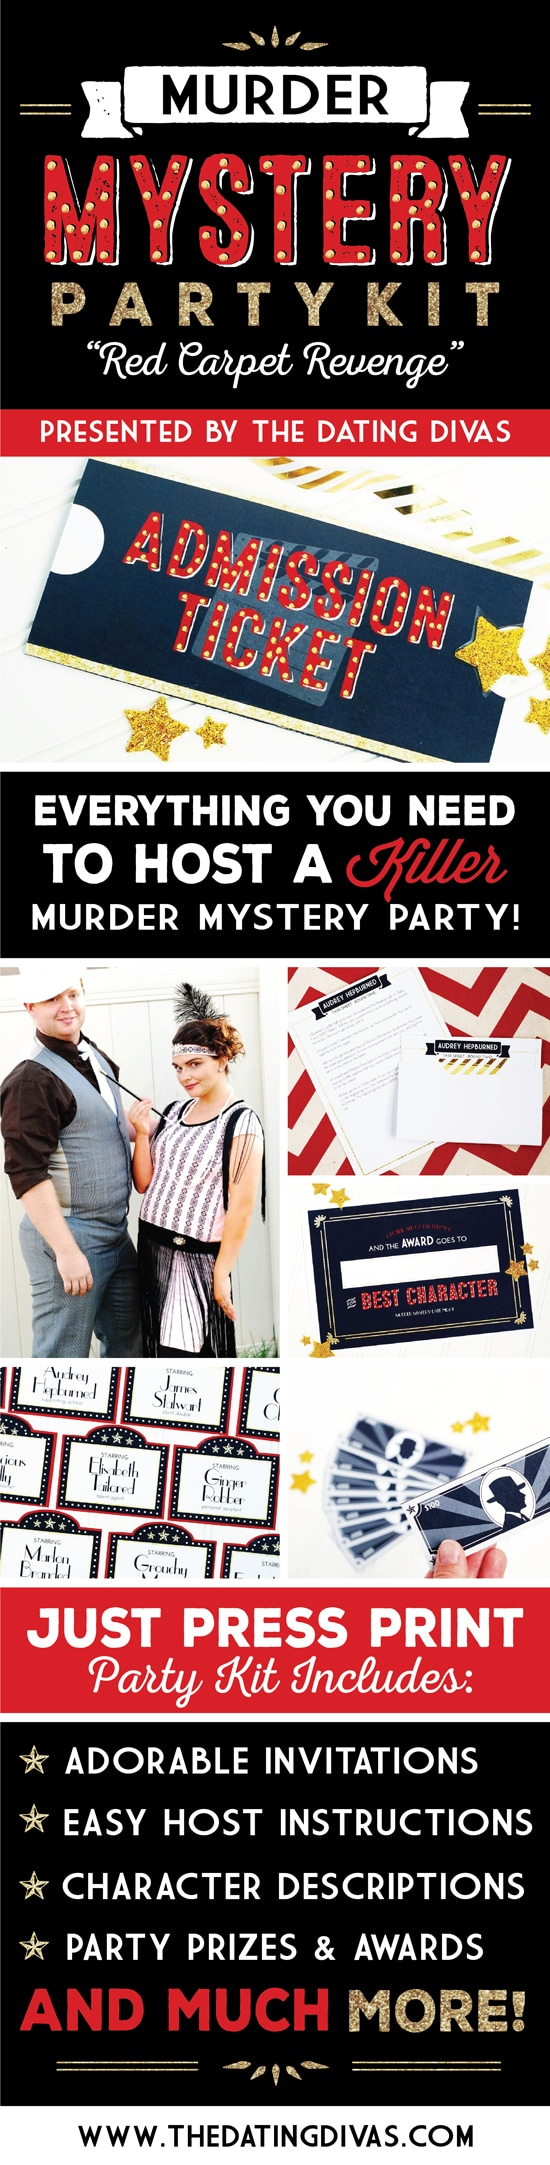 Seriously - the BEST Murder Mystery Party Pack I've ever played! And darling designs, too!